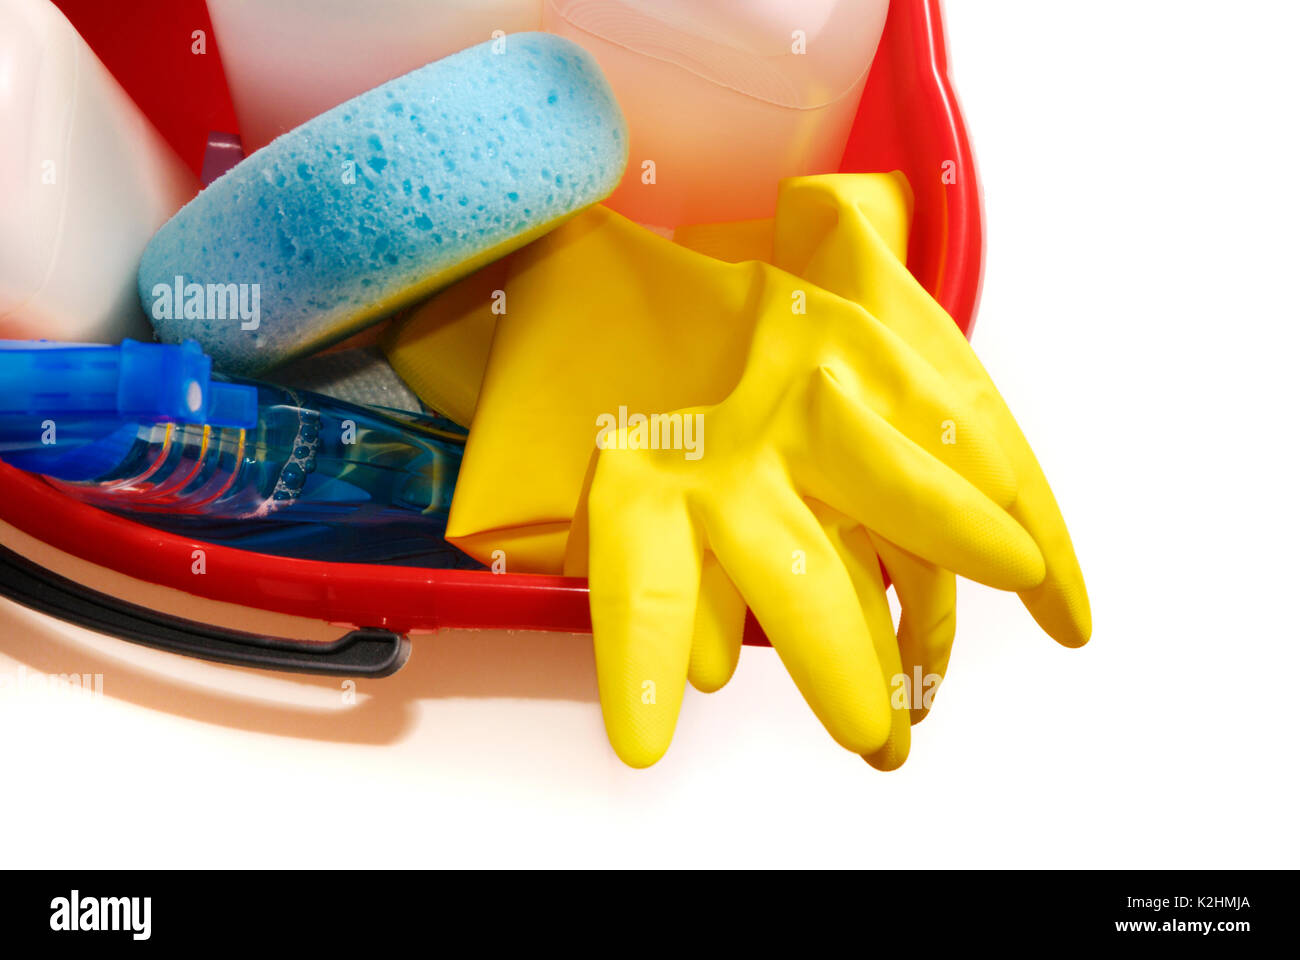 cleaning tools - Stock Image